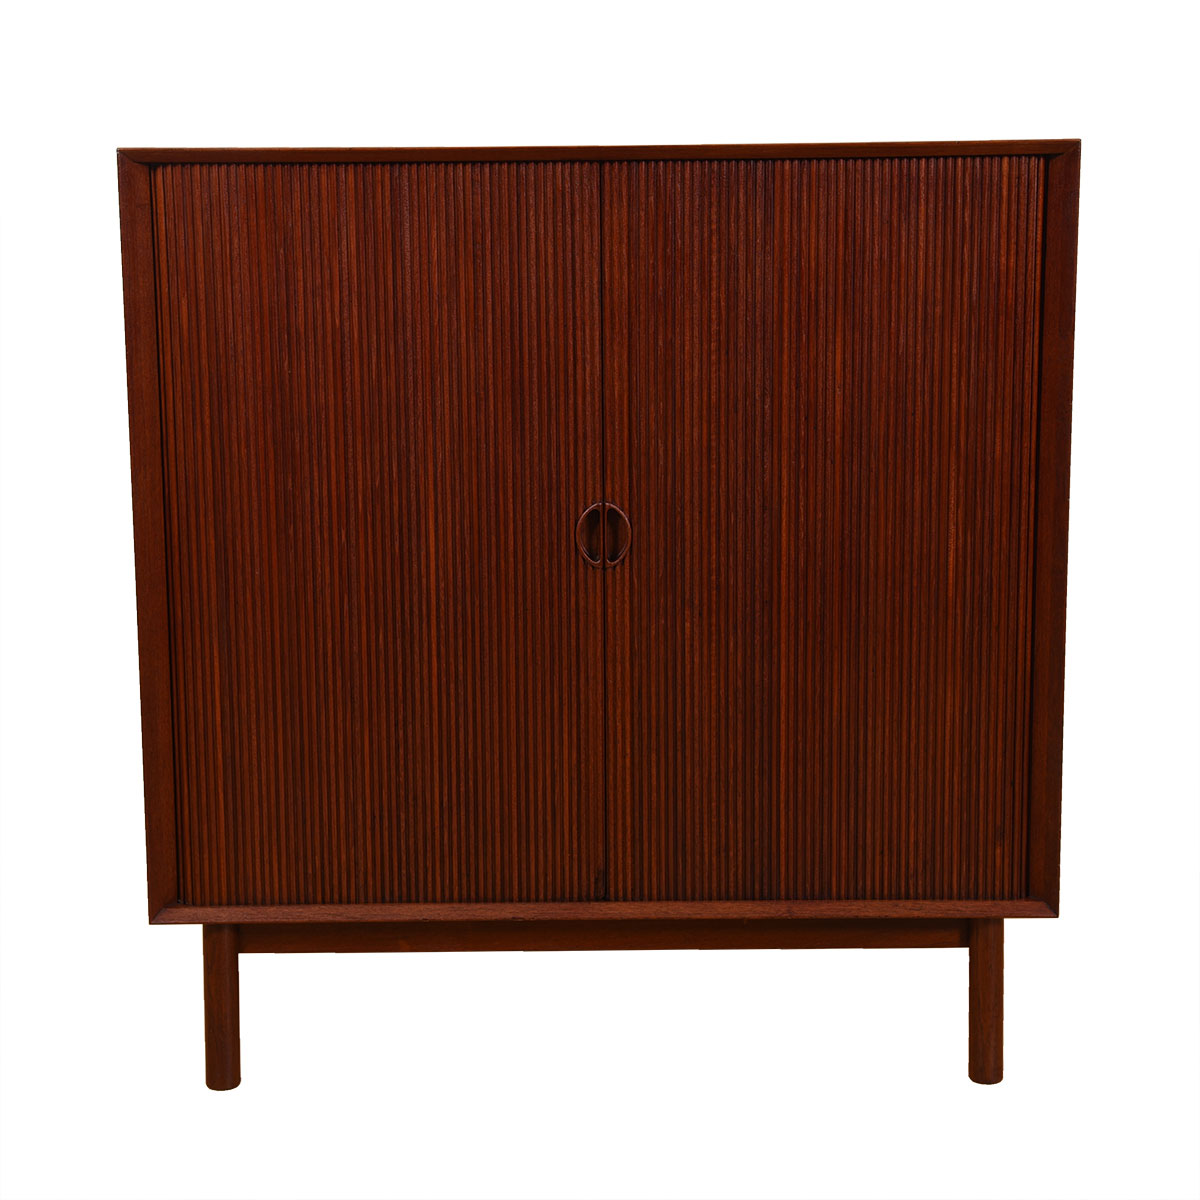 Solid Teak Tambour Door Cabinet by Peter Hvidt for Søborg Møbler